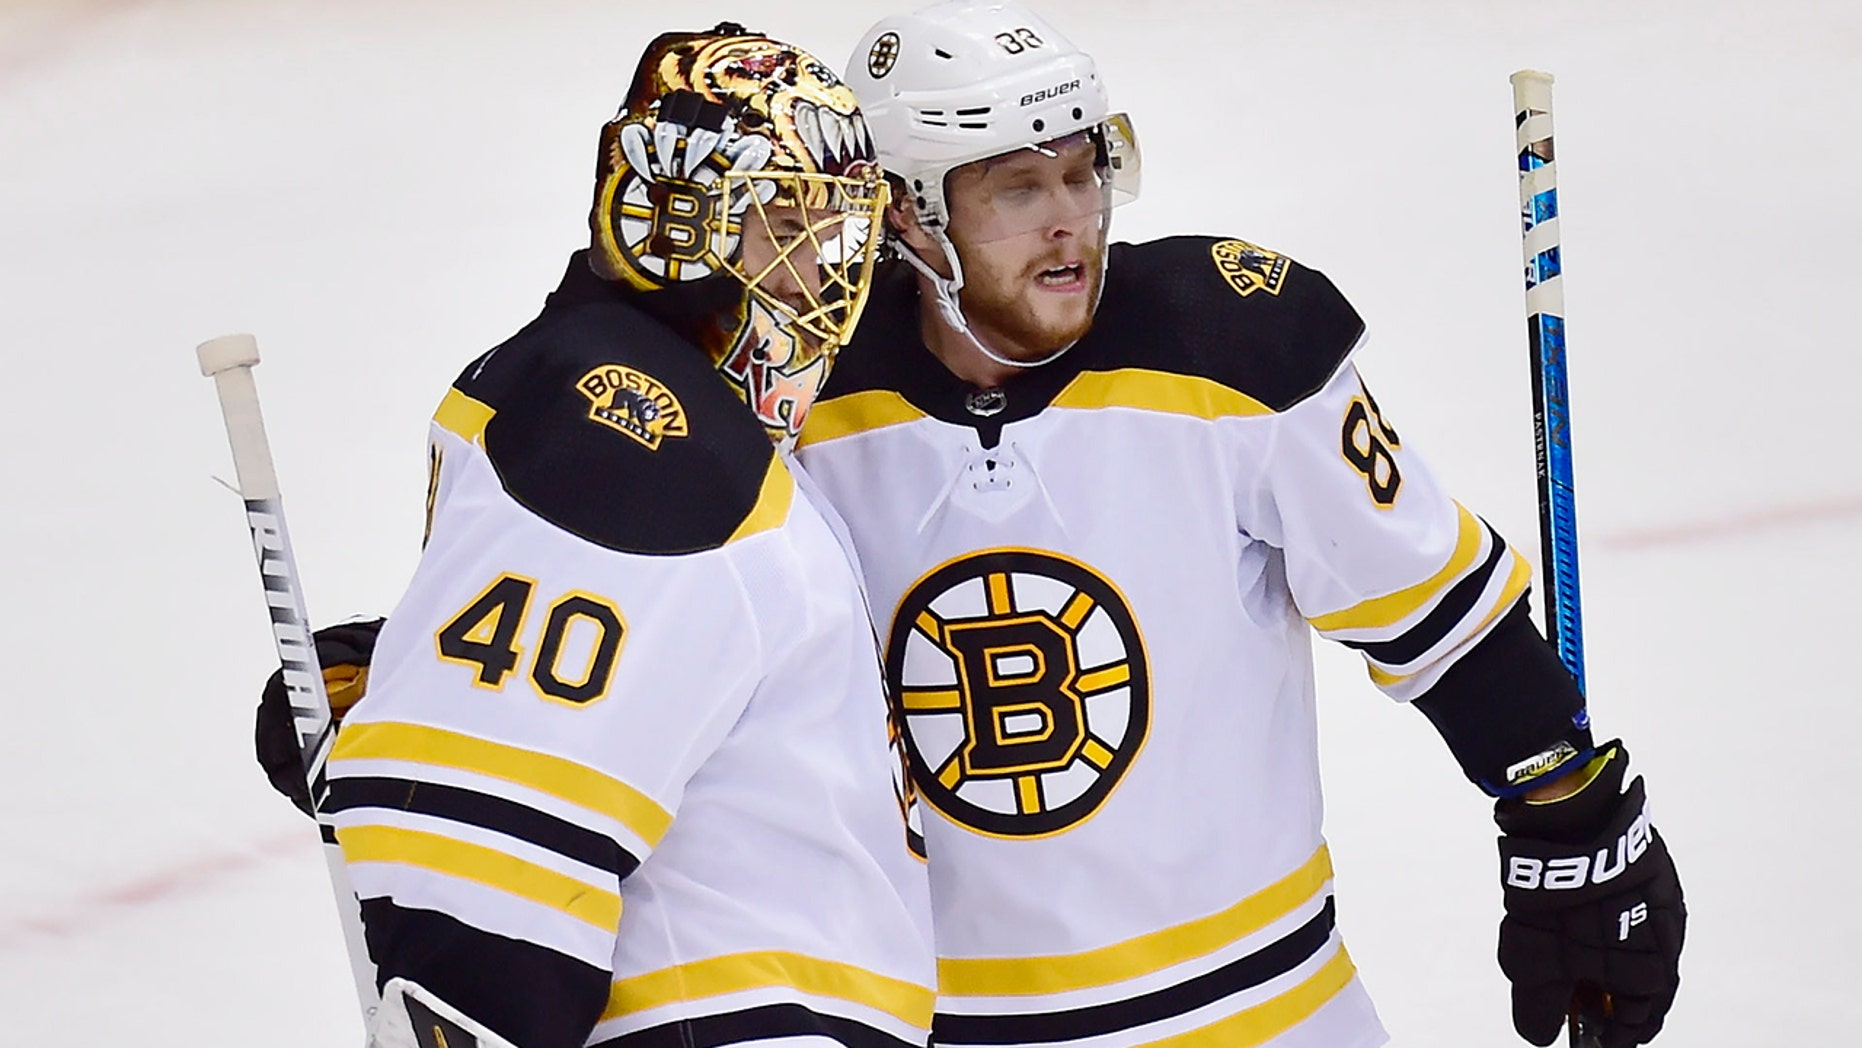 Boston Bruins goaltender Tuukka Rask (40) and teammate David Pastrnak (88) celebrate defeating the Toronto Maple Leafs after Game 4 of an NHL hockey first-round playoff series Wednesday, April 17, 2019, in Toronto. (Frank Gunn/The Canadian Press via AP)